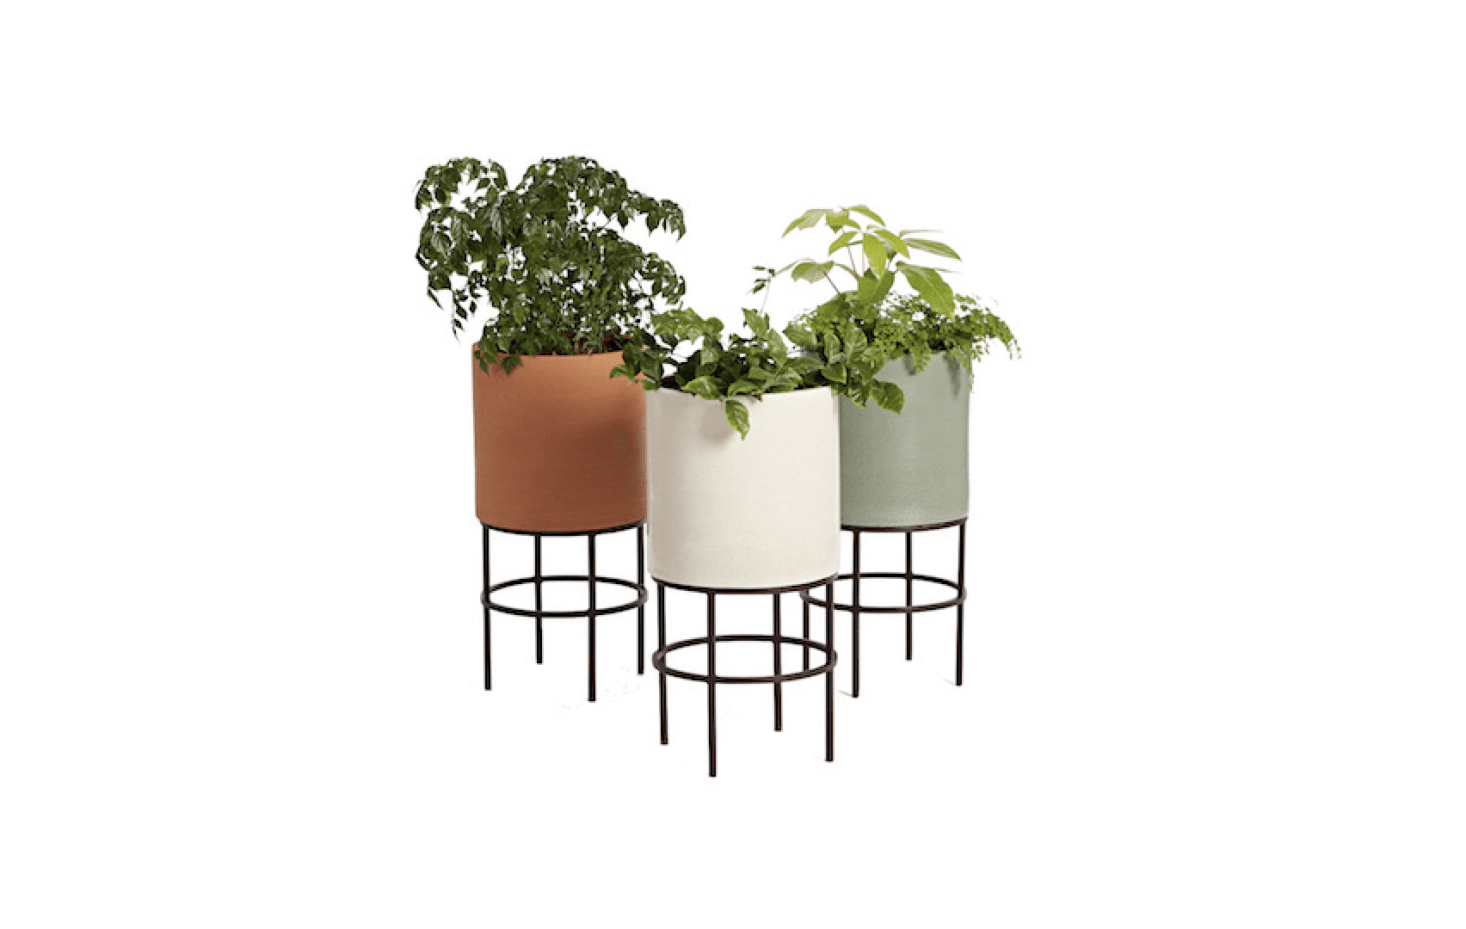 ecff582e7117 Made of hand-thrown clay, a midcentury modern cylinder Clinton Planter is  available in three colors (green, terracotta, and white) and has a metal  stand.